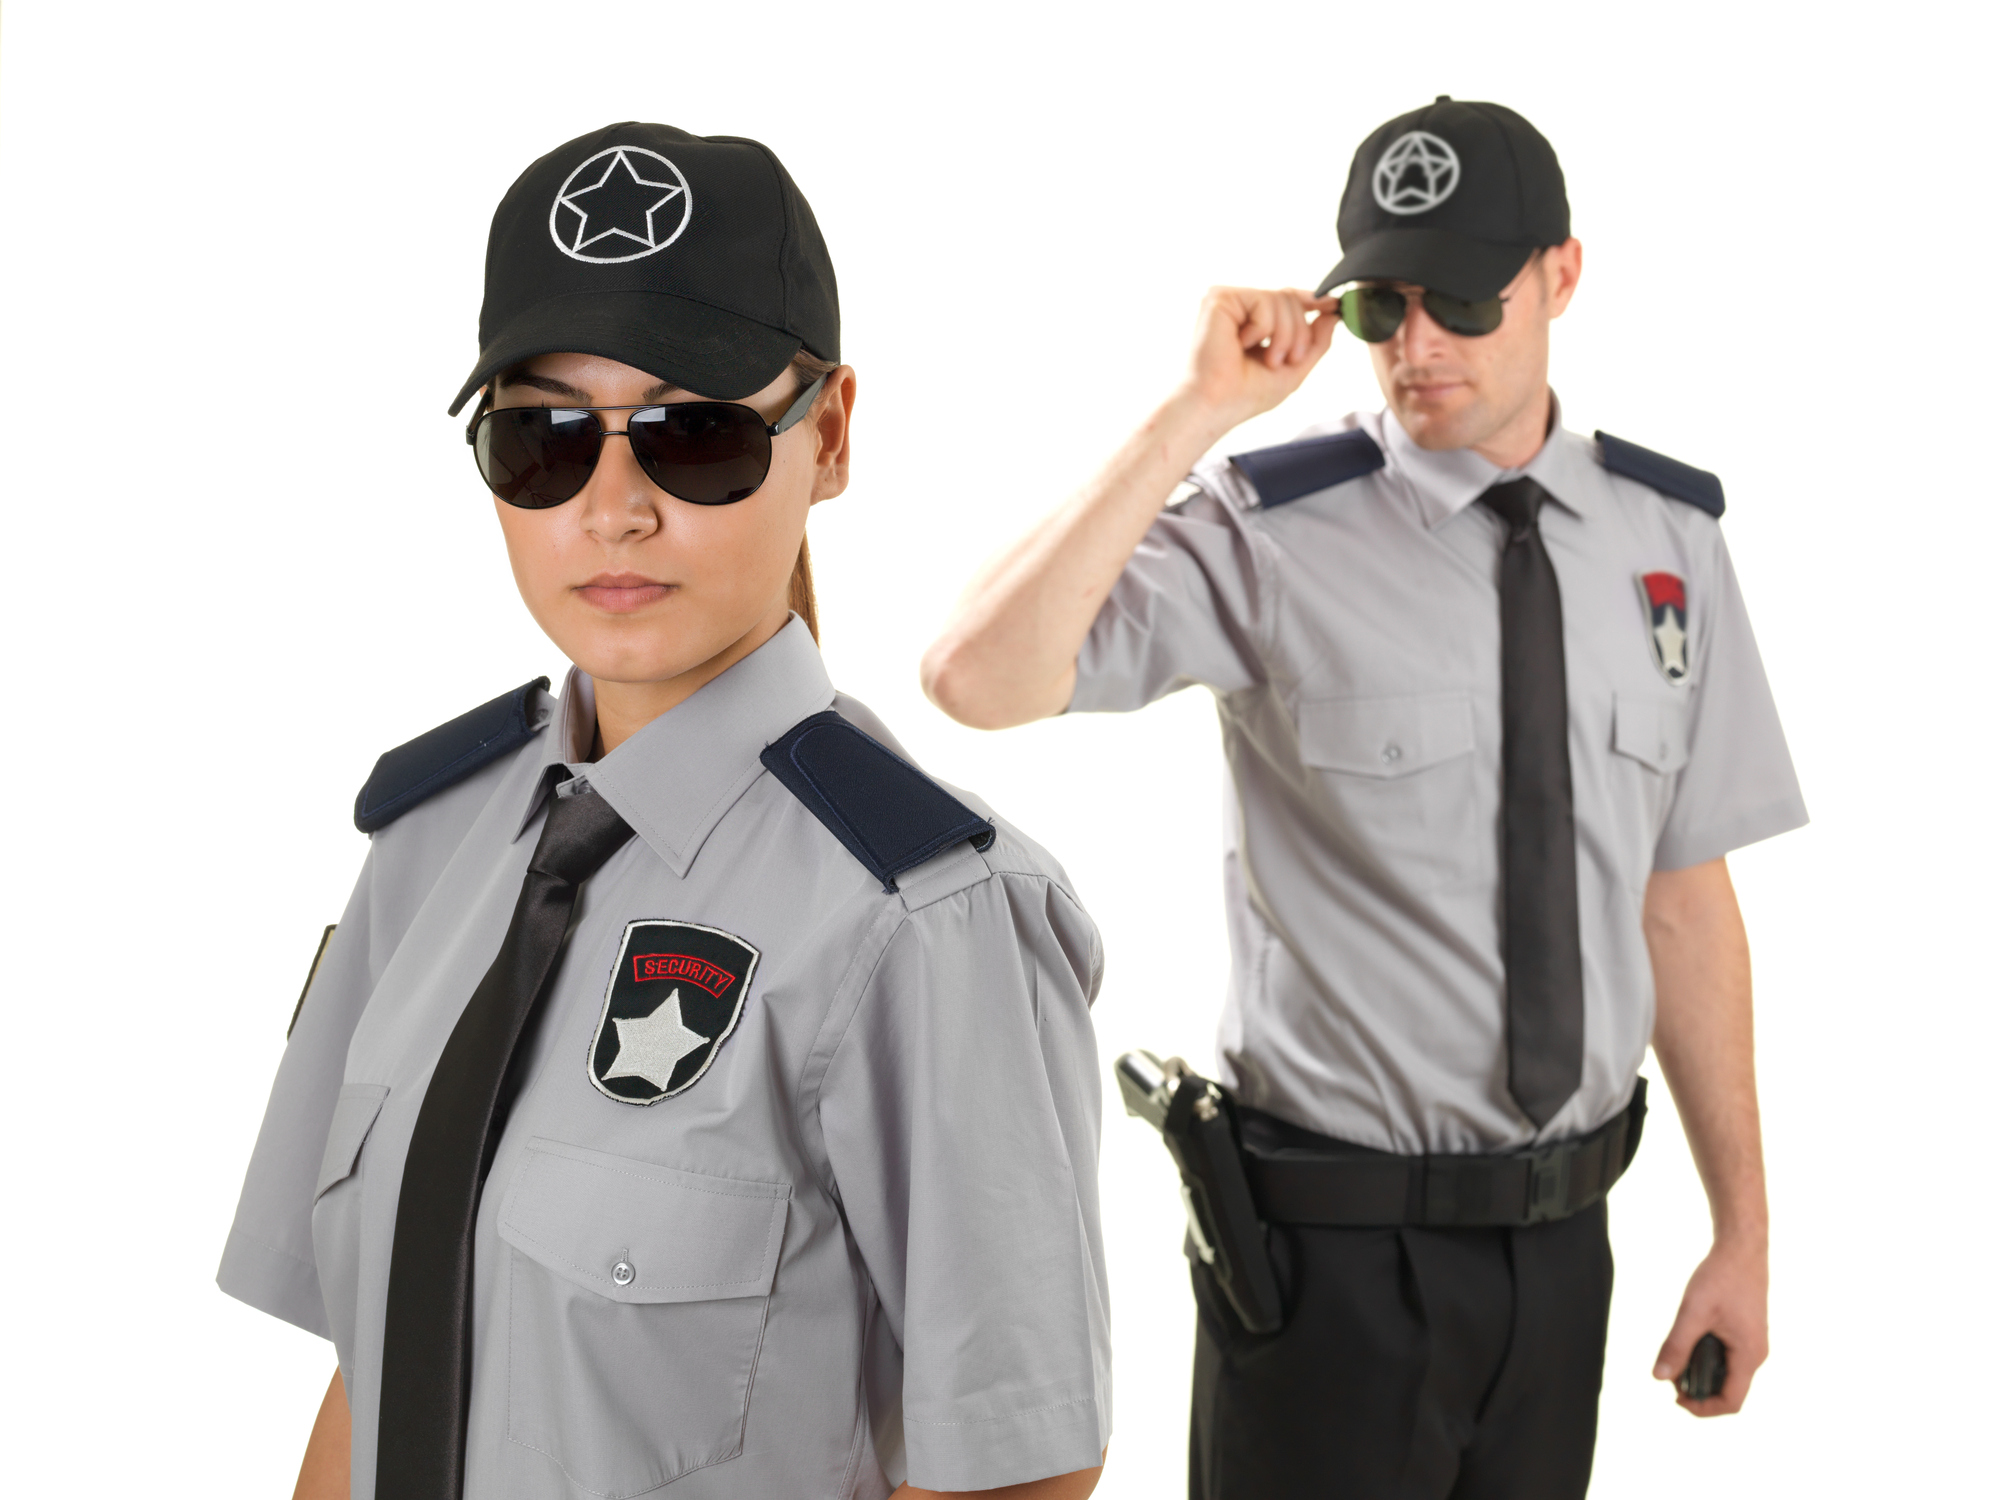 A1A Security Services provides armed security services to clients across the State of Florida.